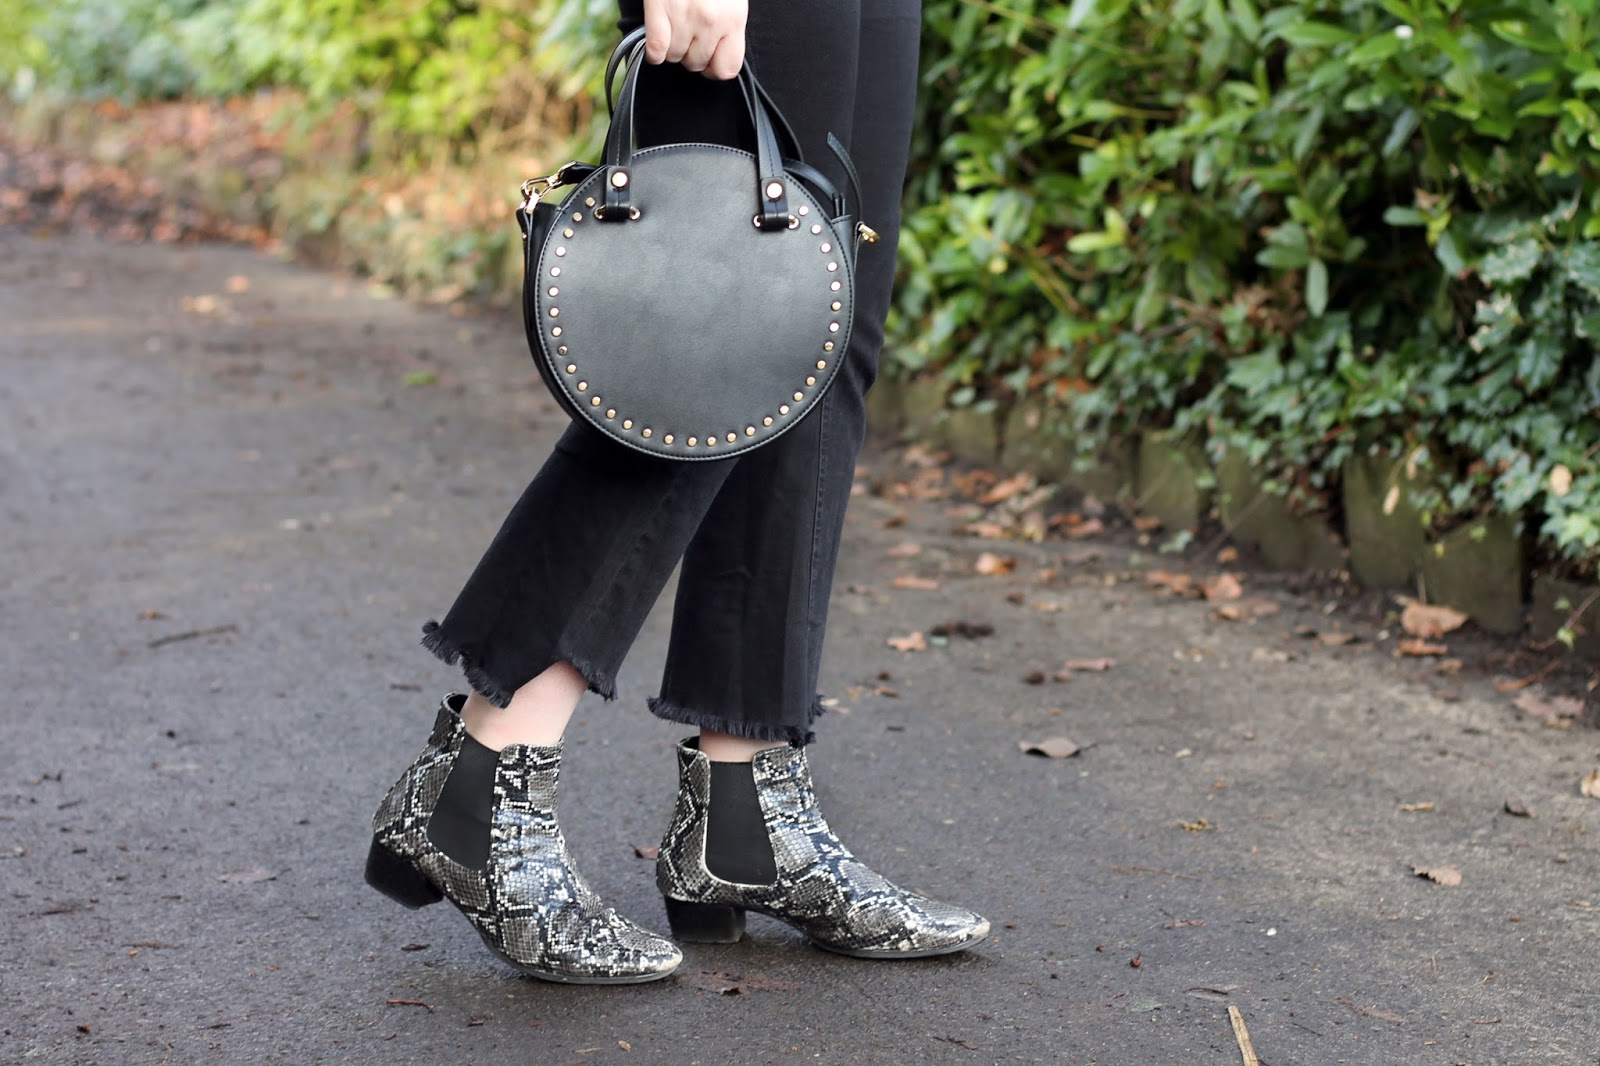 structured round cross body bag in black topshop with snake print ankle Chelsea boots